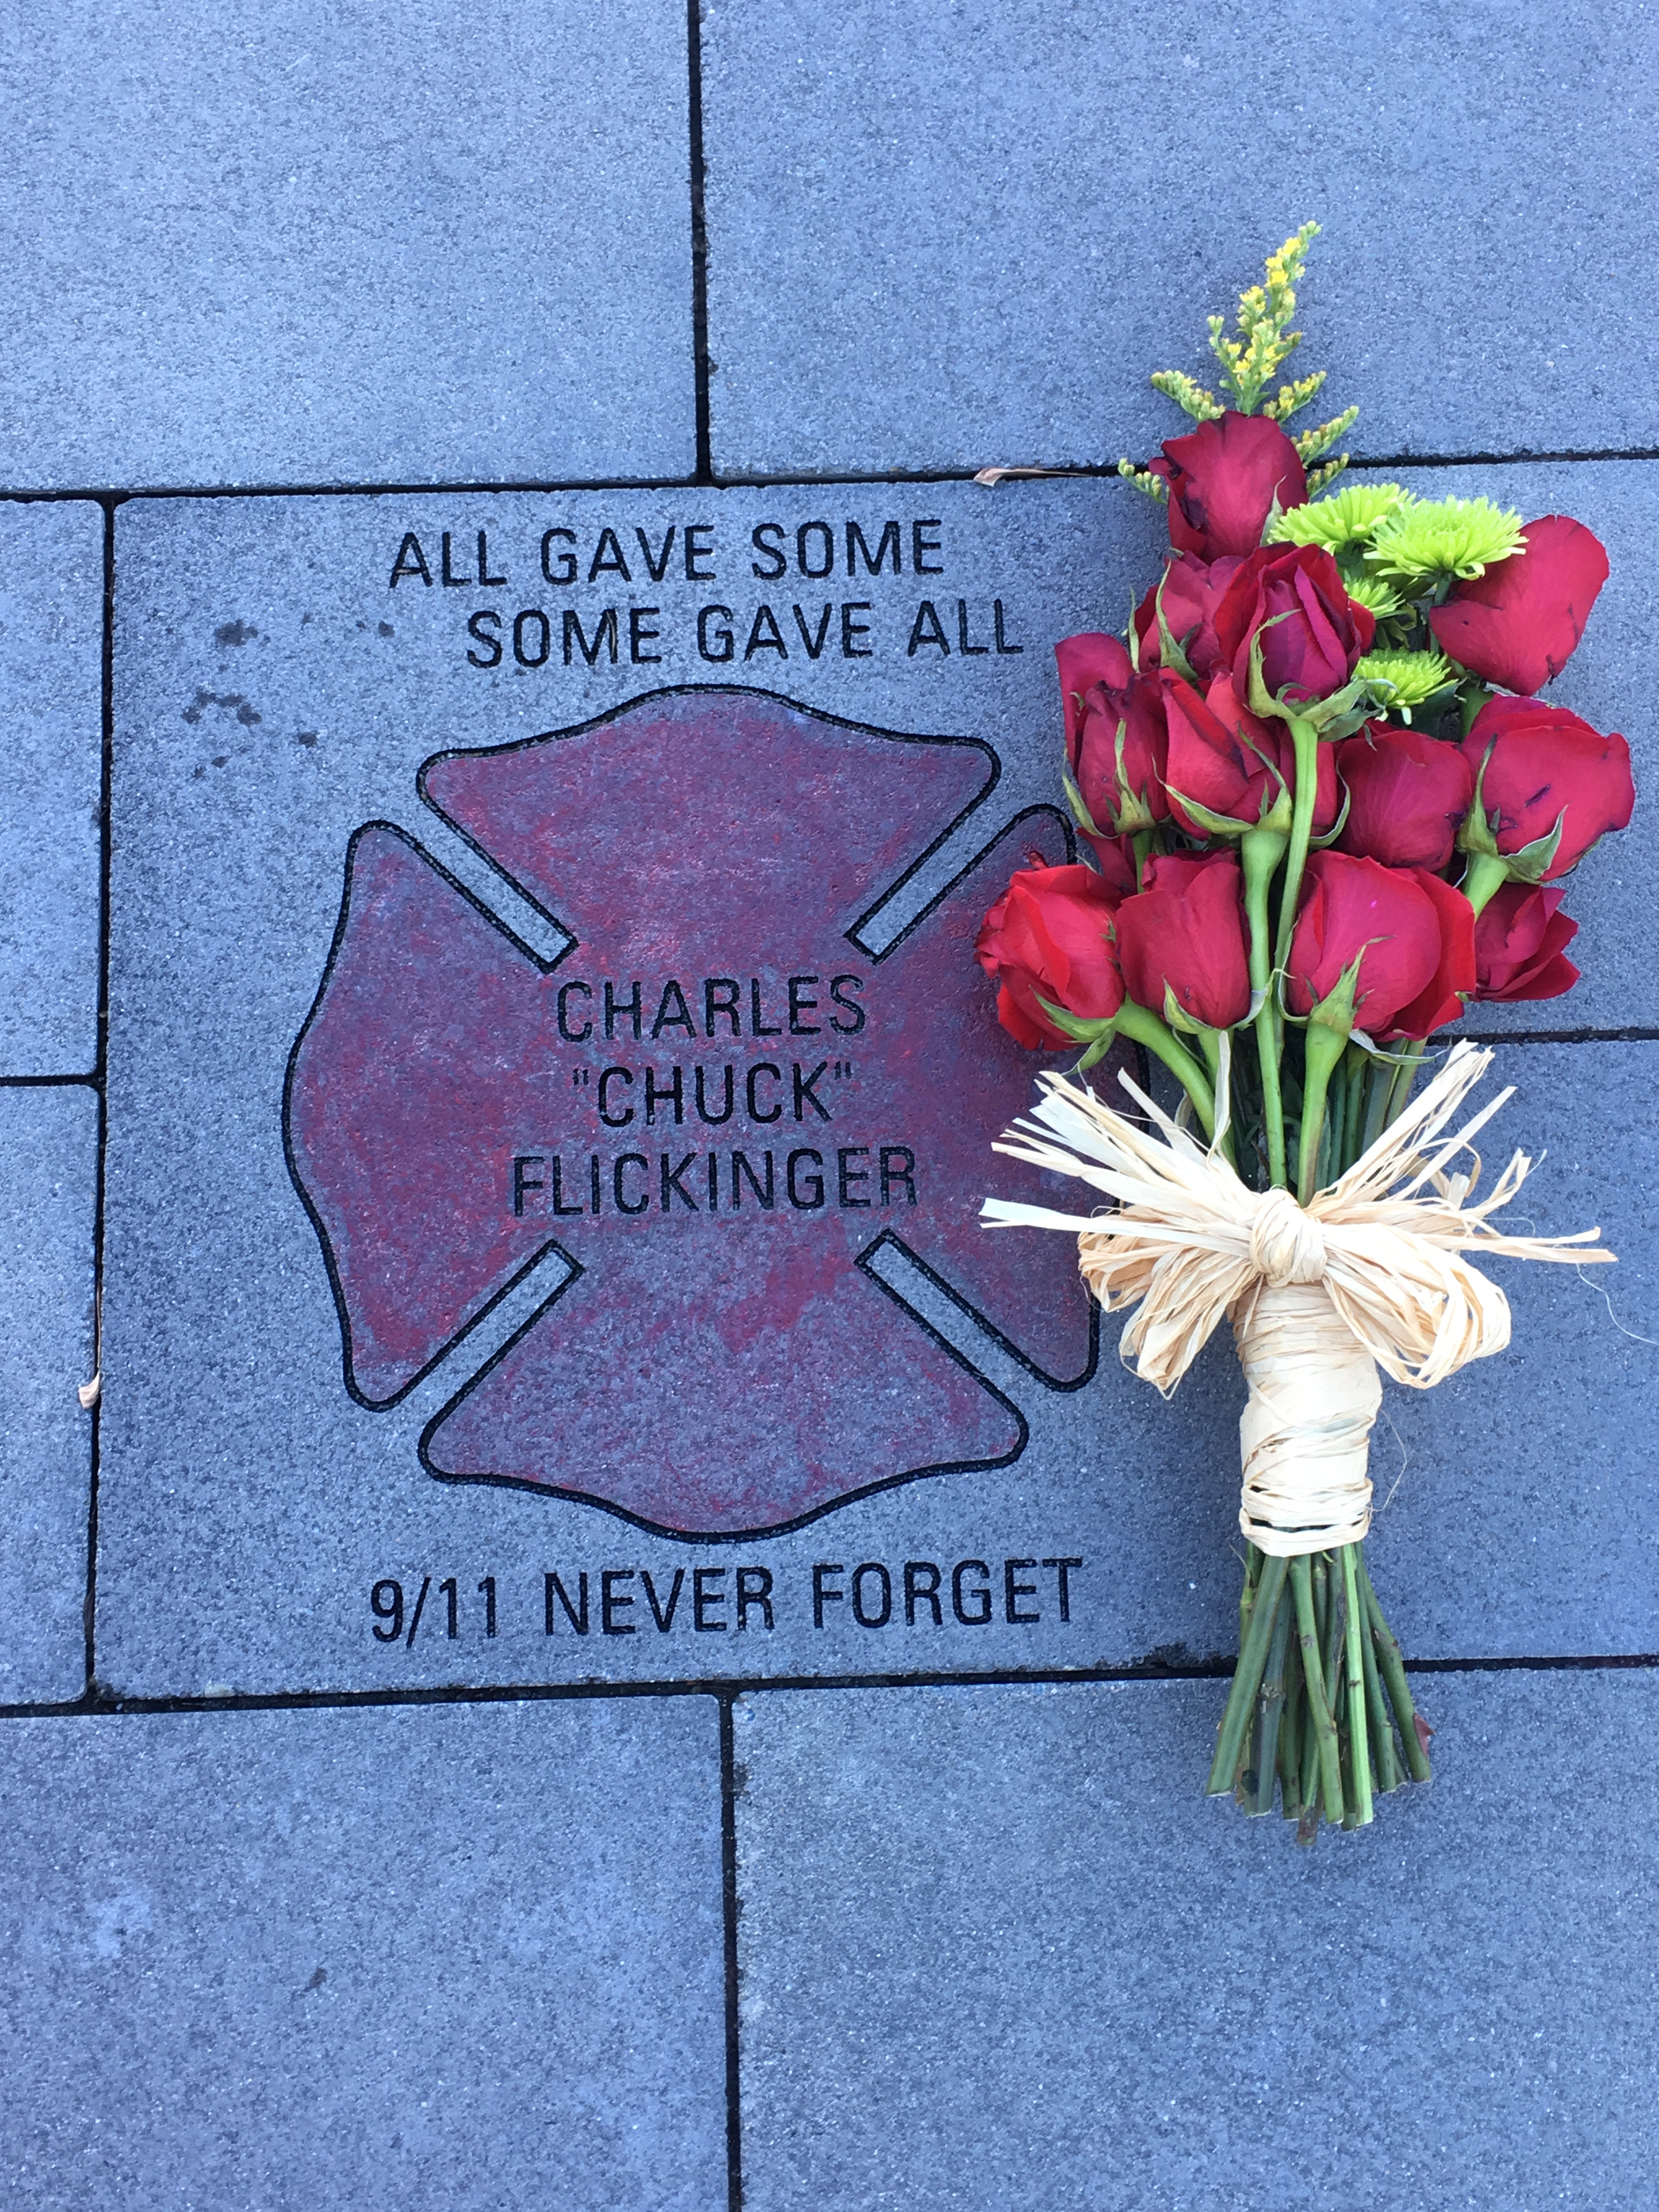 A memorial to Charles  Chuck  Flickinger, who volunteered as a firefighter on 9/11